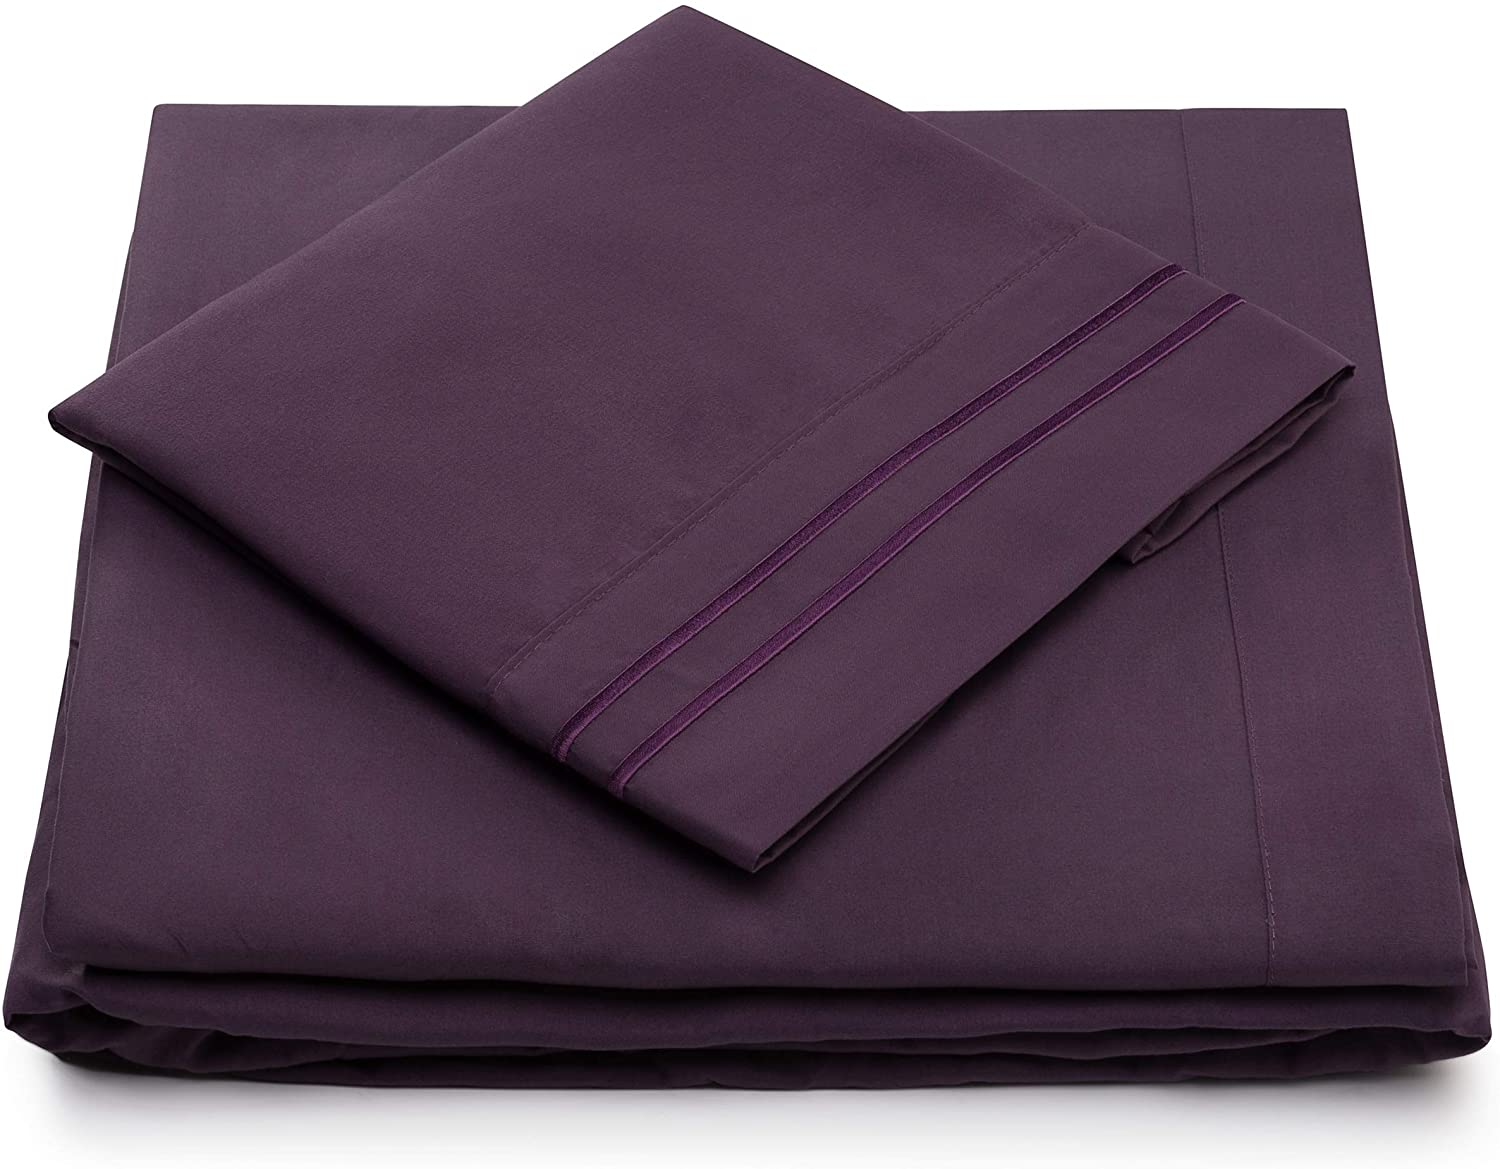 Queen Size Bed Sheets - Purple Luxury Sheet Set - Deep Pocket - Super Soft Hotel Bedding - Hypoallergenic - Wrinkle & Stain Resistant - Plum Queen Sheets - 4 Piece